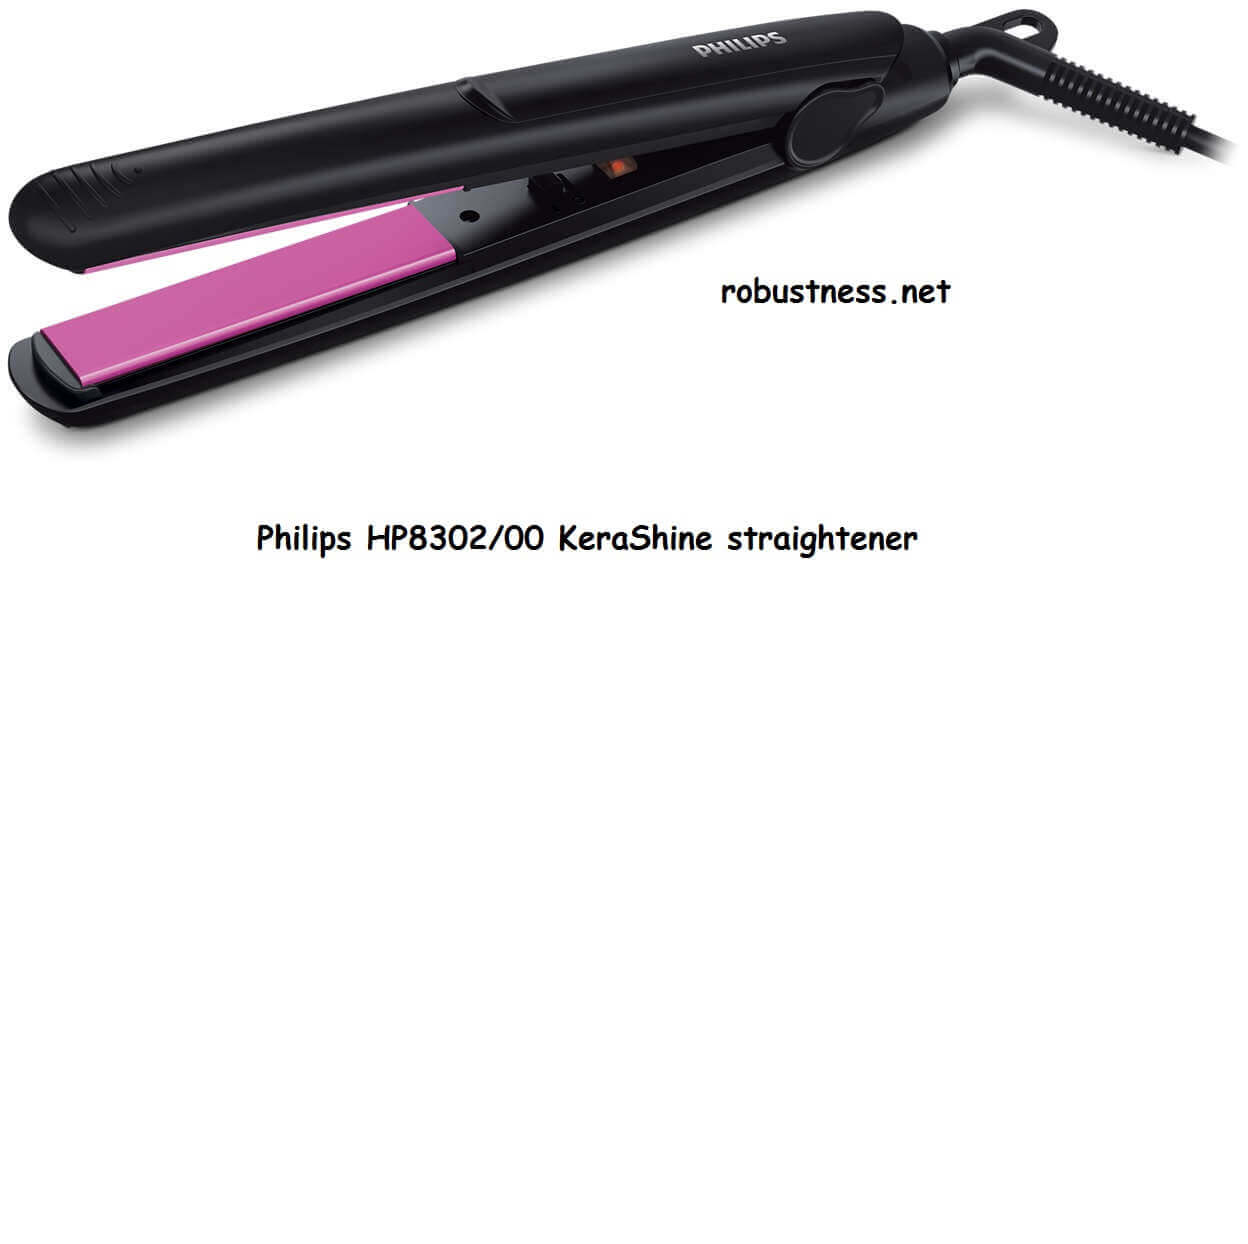 philips hair straightener model Philips HP8302